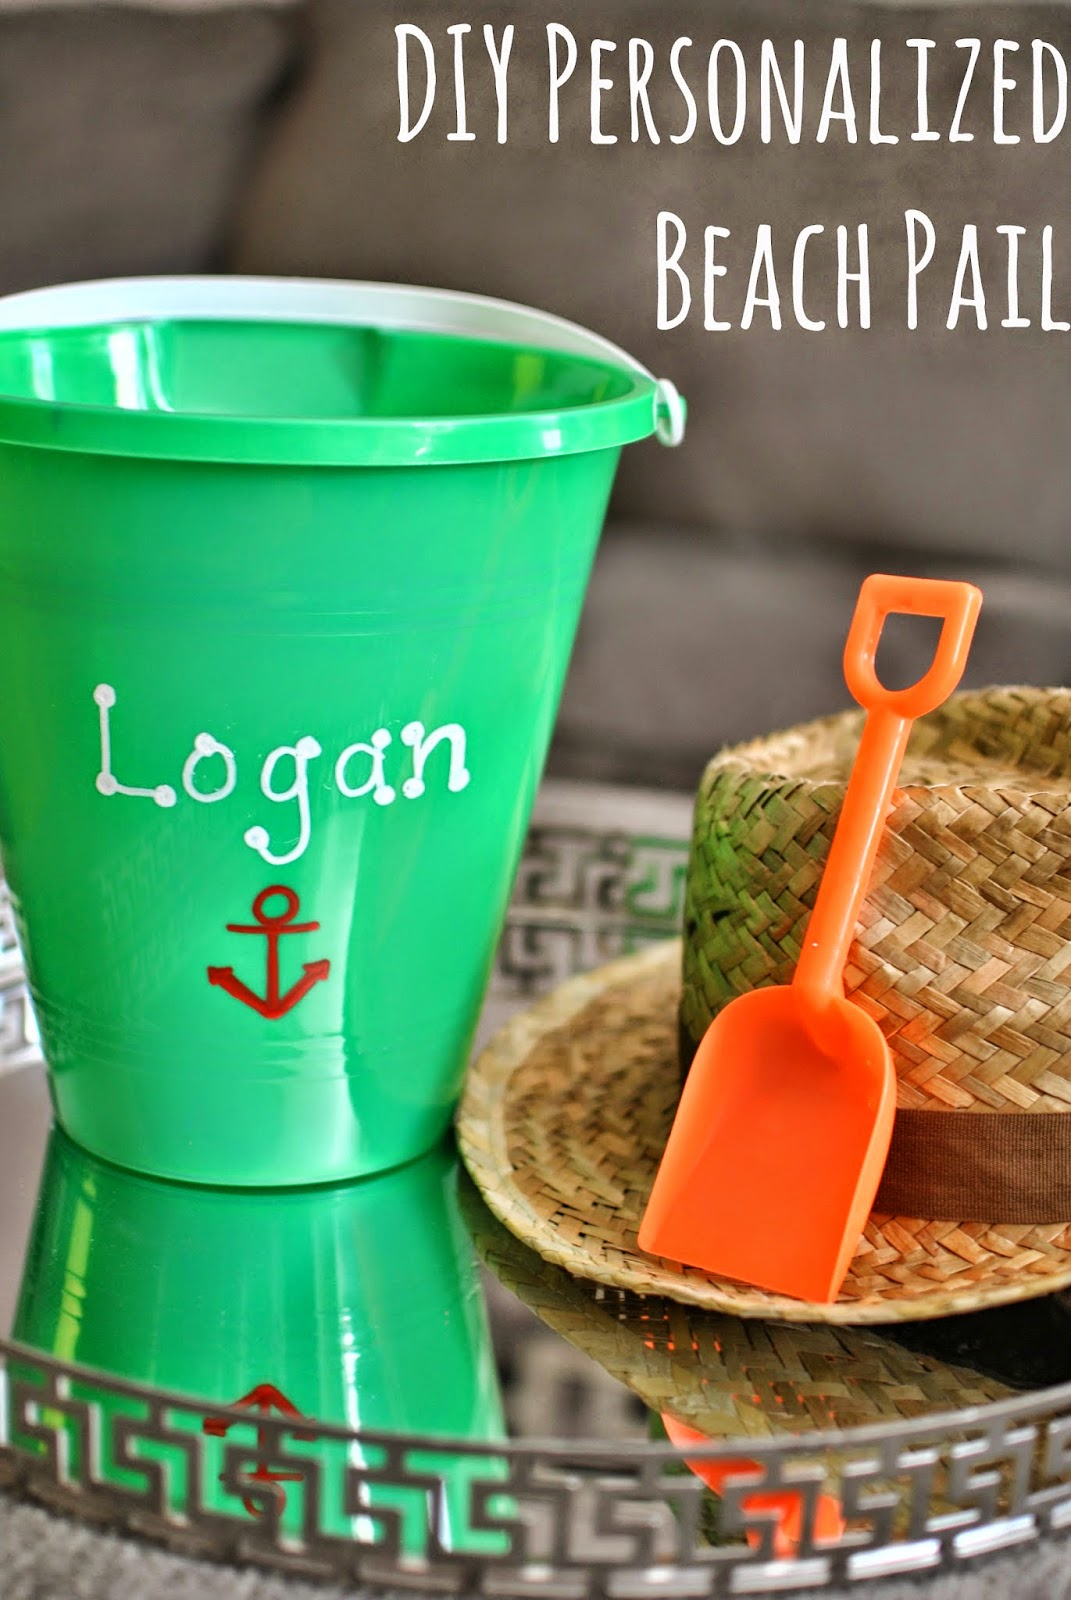 Personalized Beach Pails How to